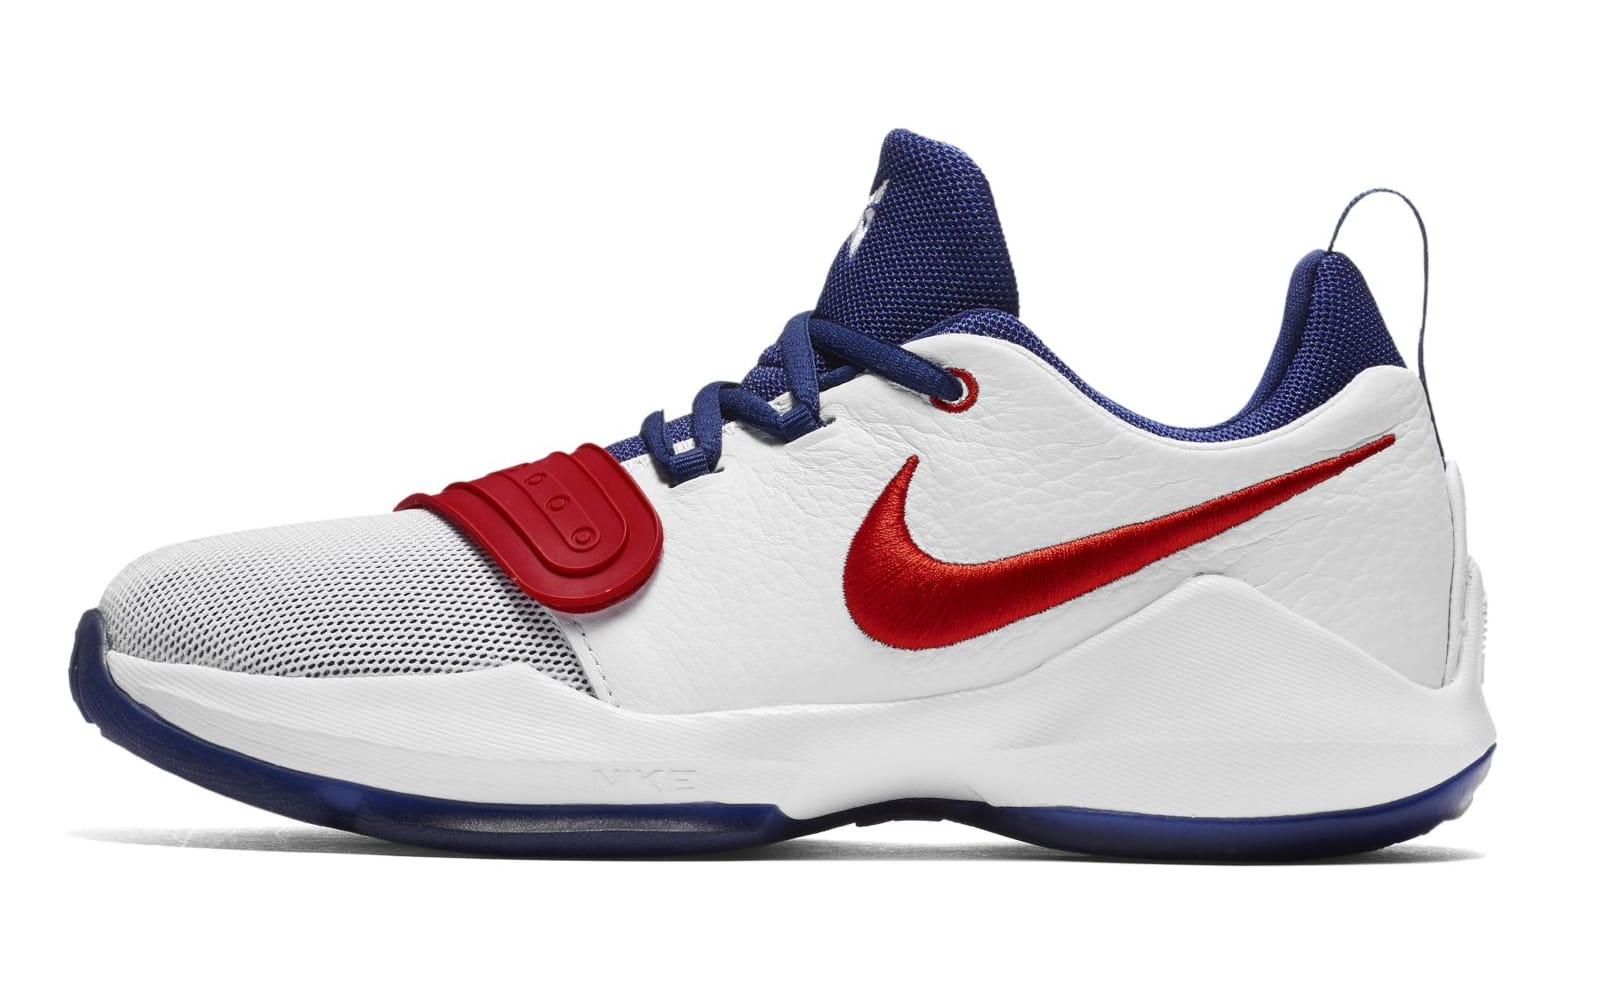 Nike PG 1 GS White/University Red-Deep Royal Blue (Lateral)